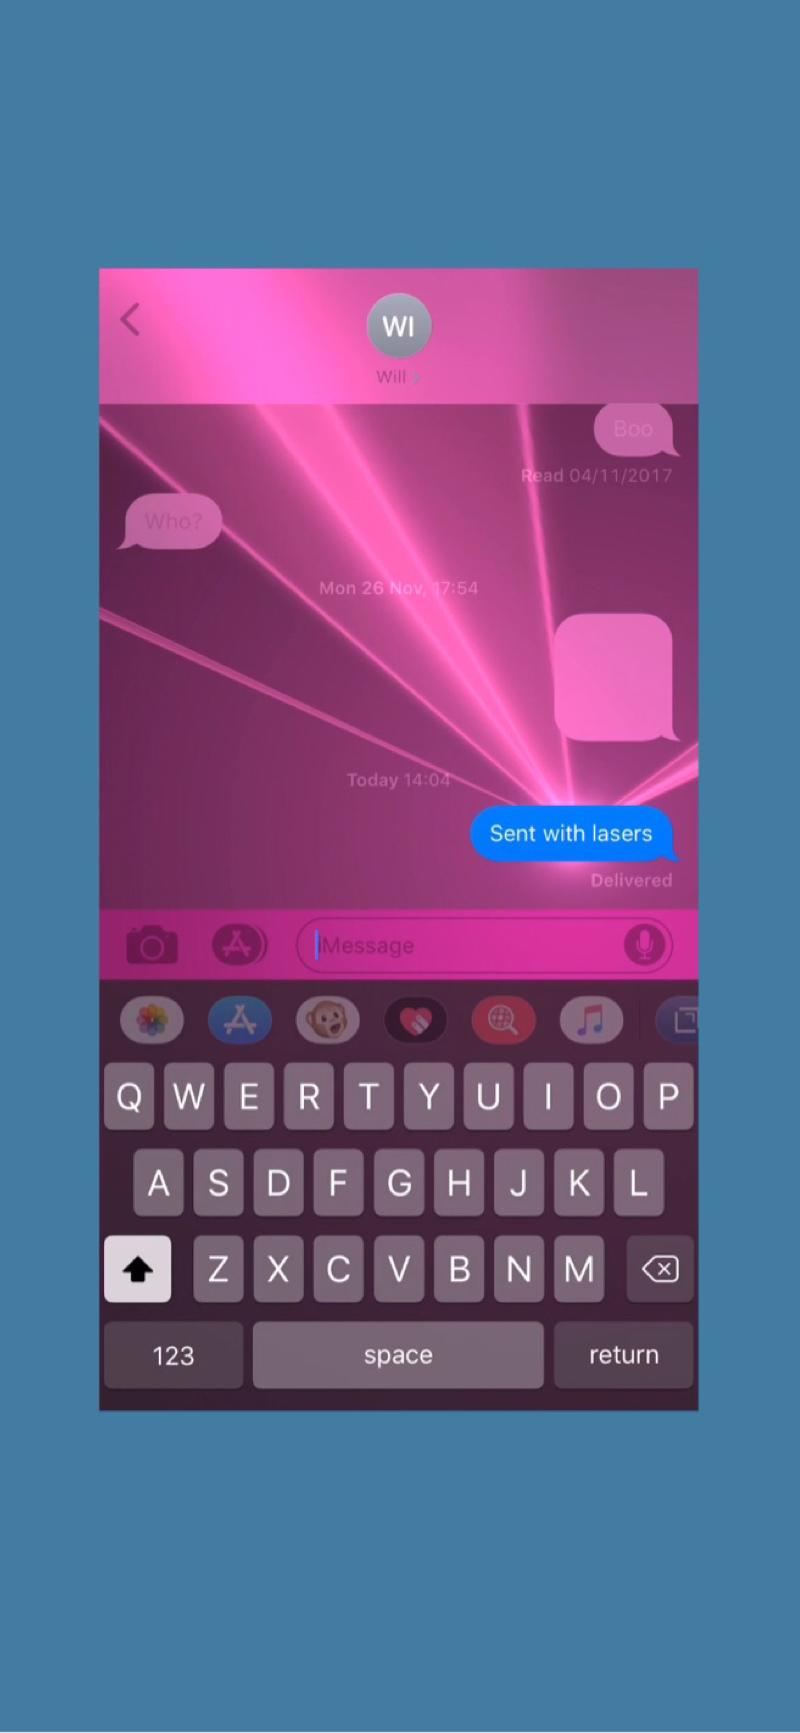 How to use iPhone message effects to send lasers and